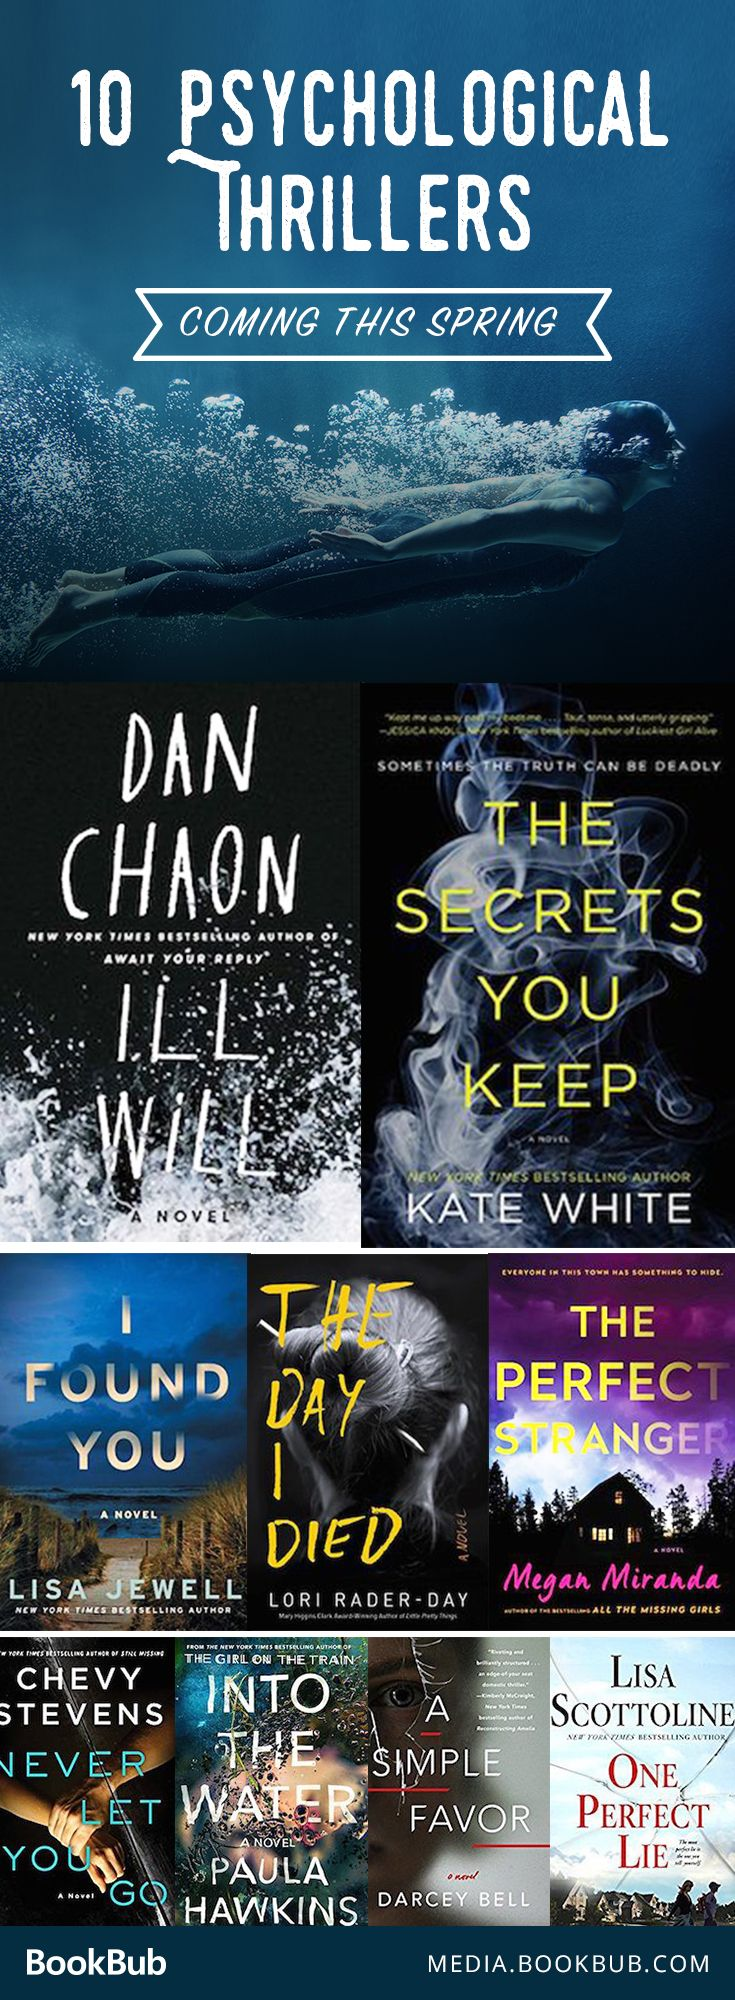 10 Chilling Psychological Thrillersing This Spring